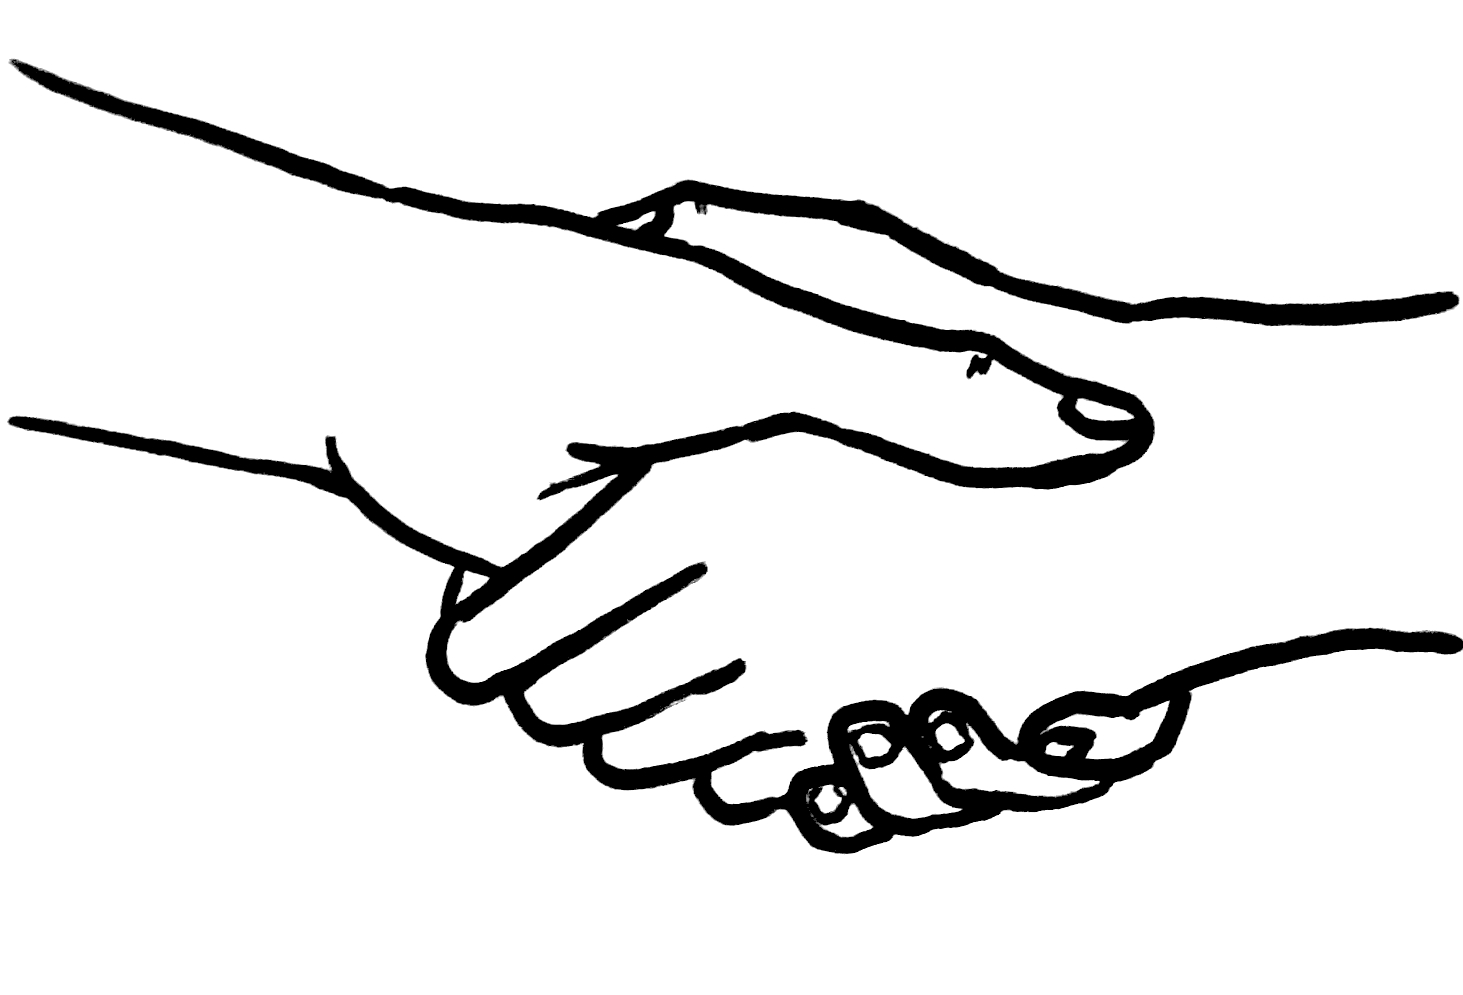 Clipart hand reaching out to shake someone s hand graphic free stock Free Hand Shaking Images, Download Free Clip Art, Free Clip Art on ... graphic free stock